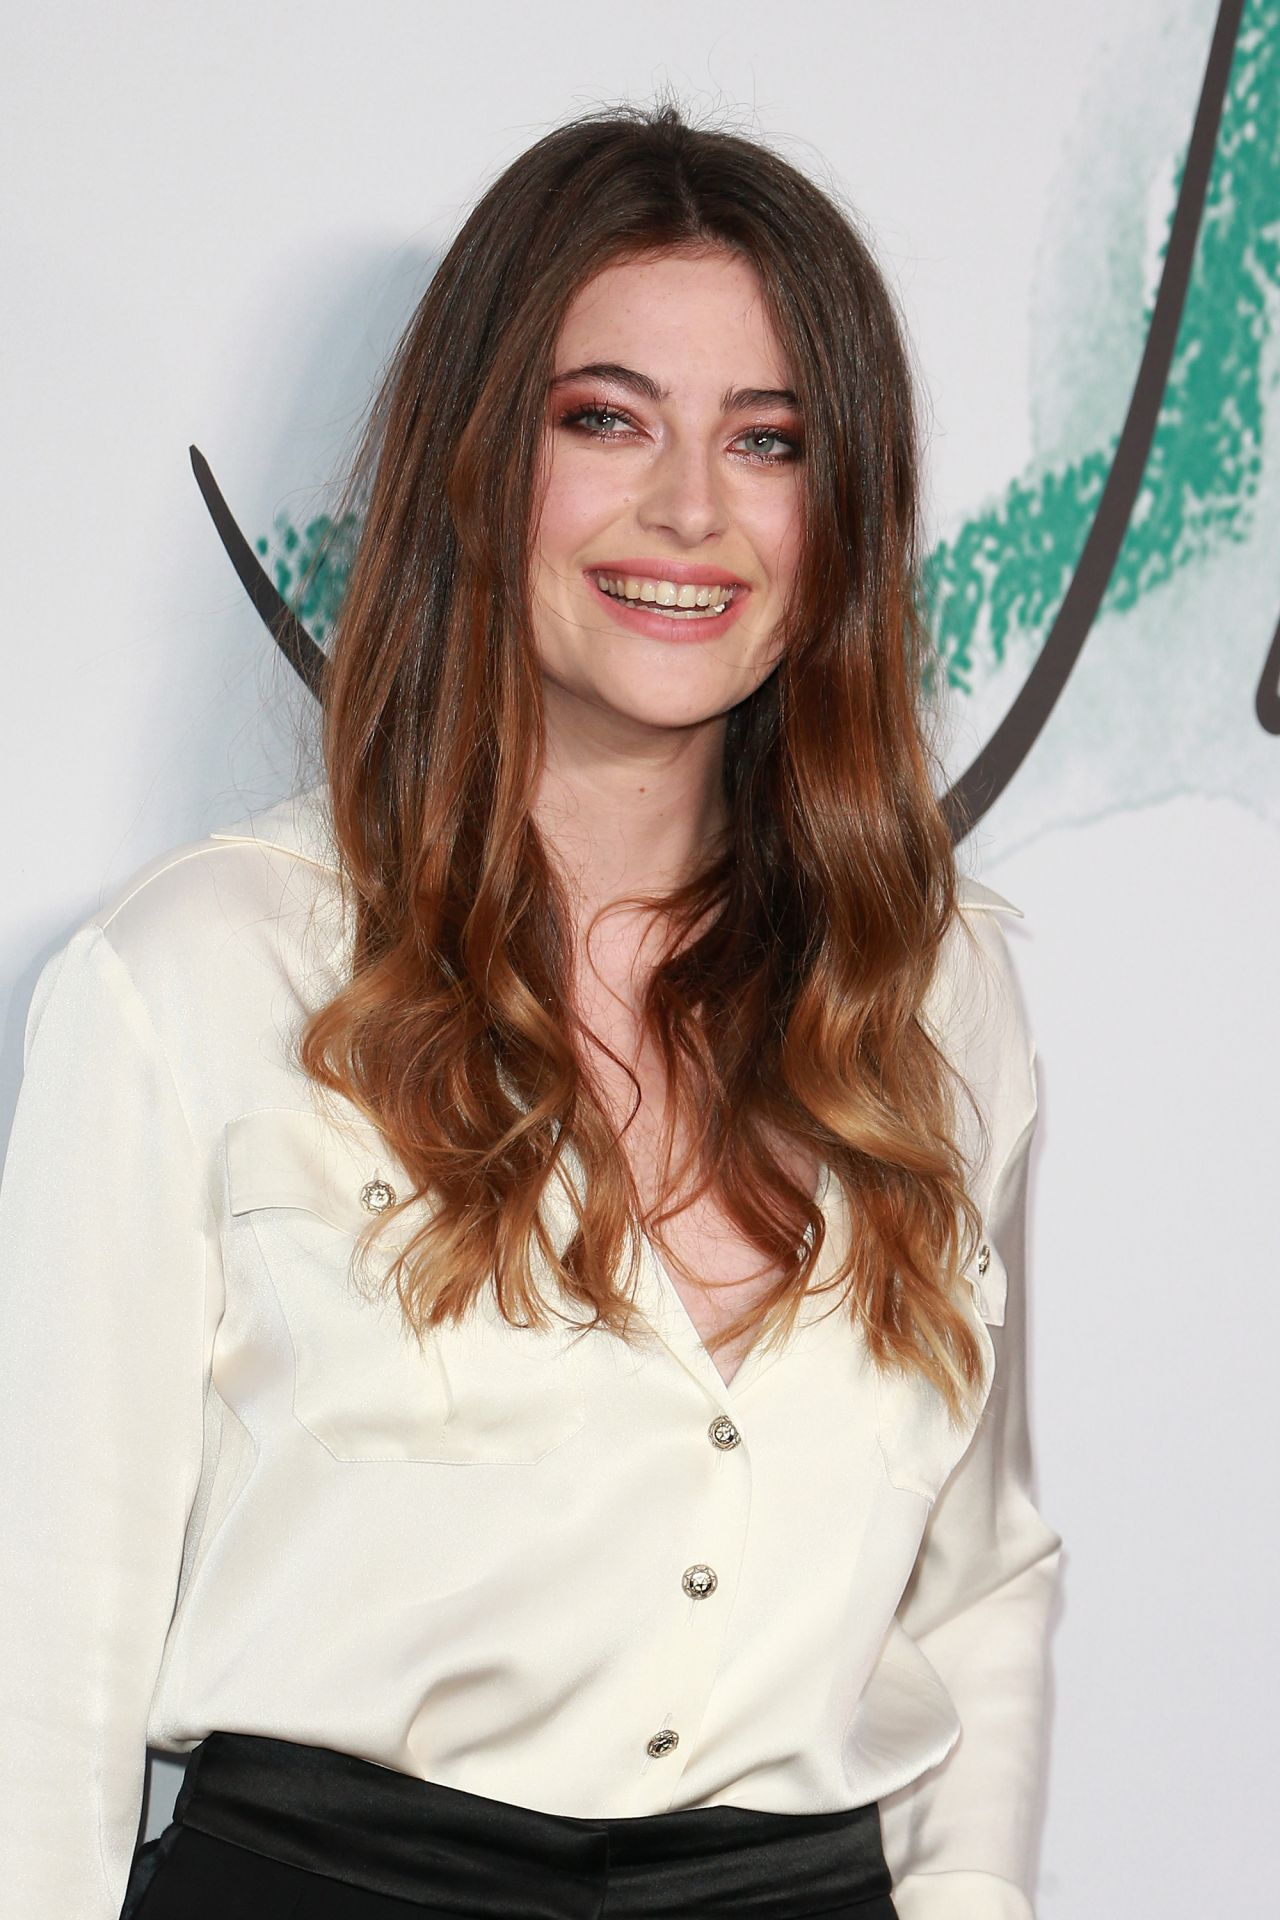 pics Millie brady launch of the perception in london uk